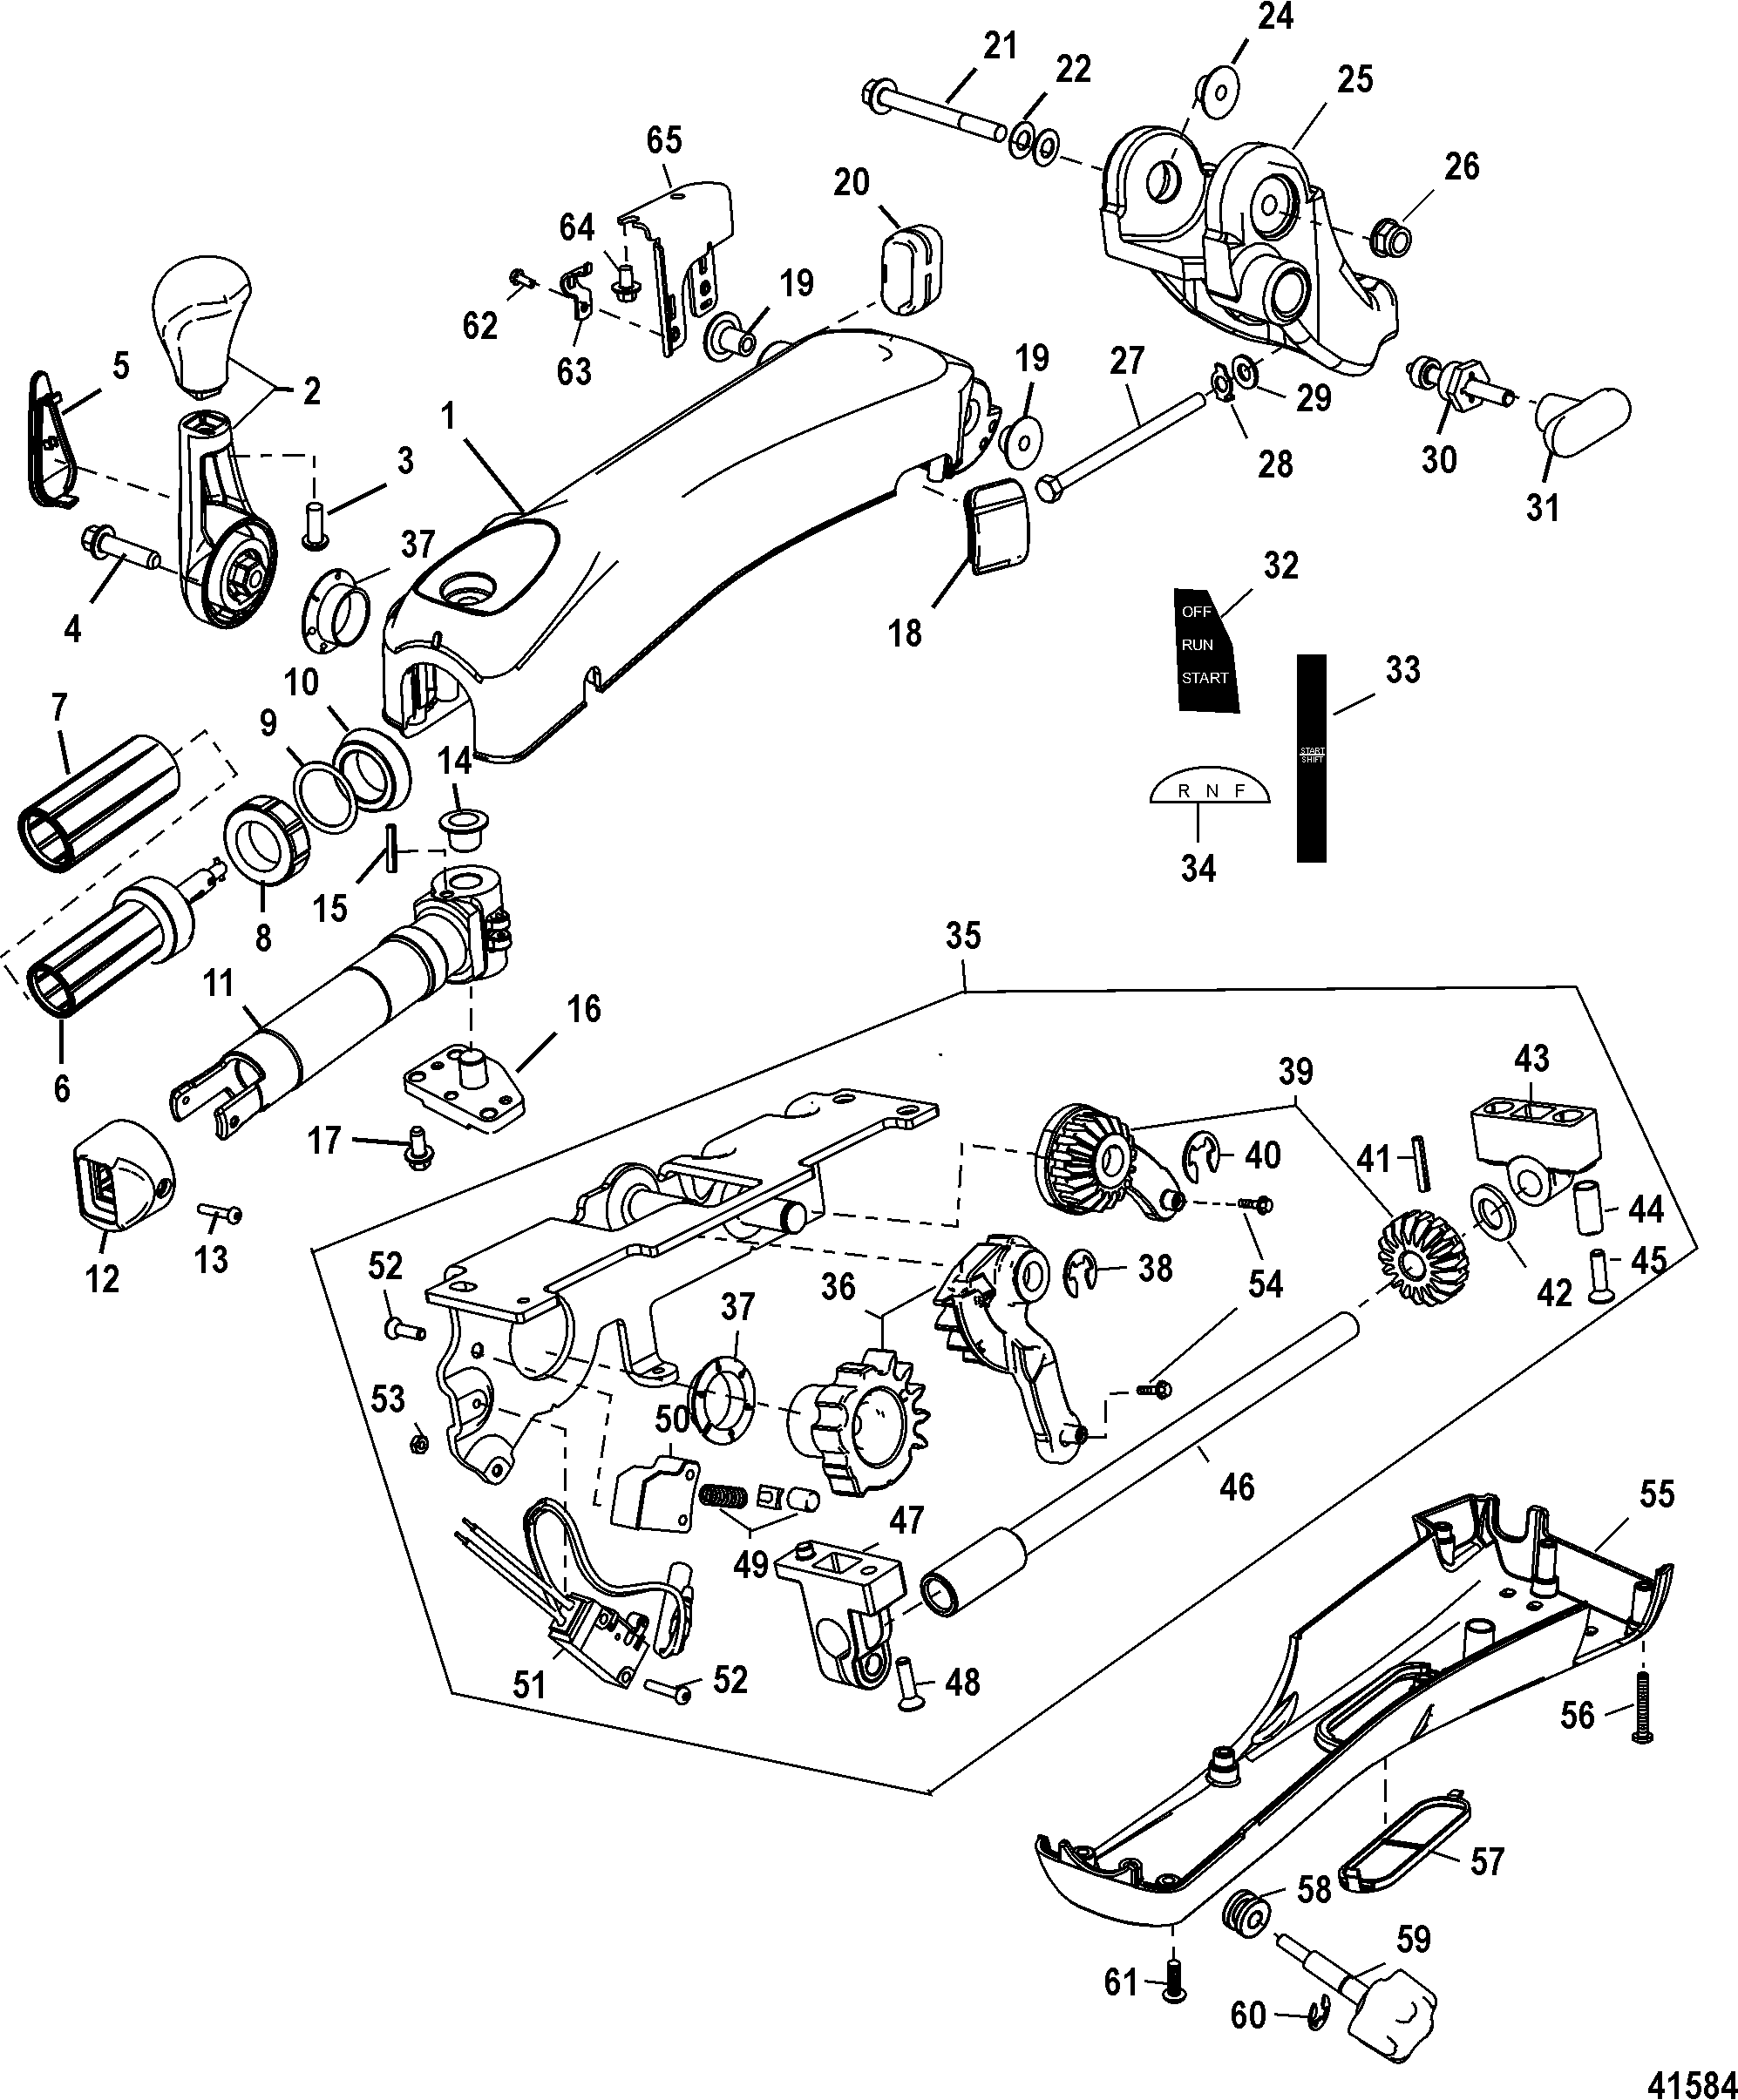 371378585445 likewise Mercury moreover Volvo Penta Engine Diagram Auto Wiring together with Marine Ignition Wire Diagram further Gm Gen Iii Ls Pcmecm Electronic Throttle Equipment Guide. on mercury marine ignition wiring